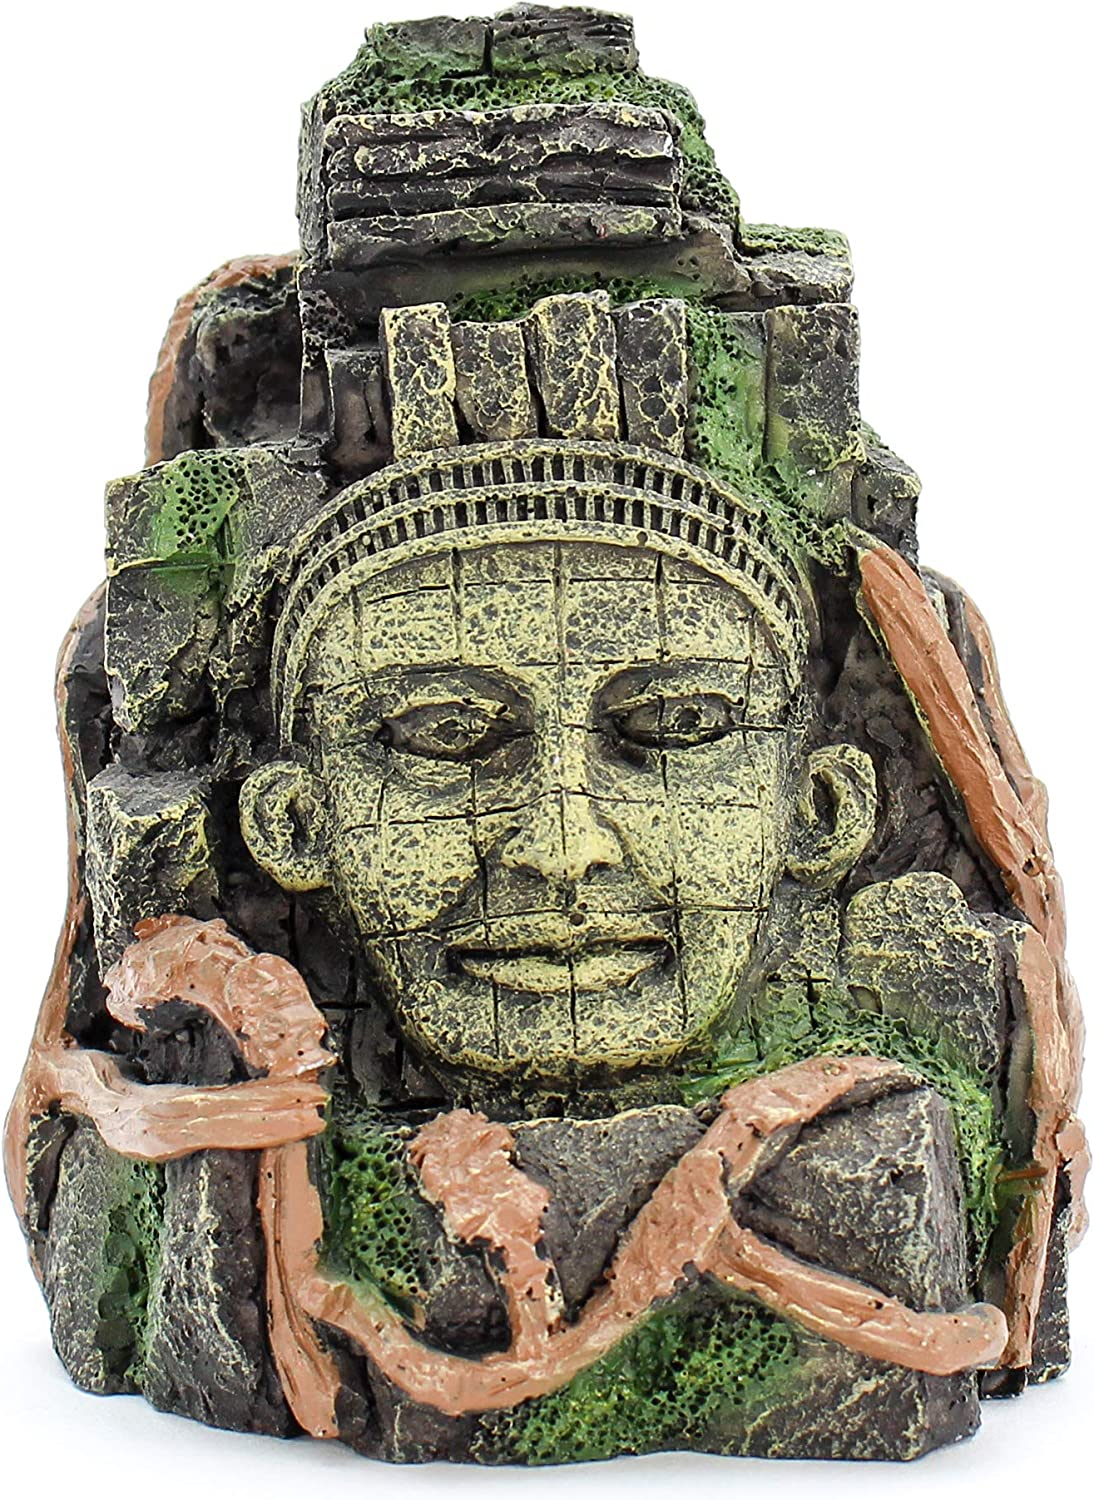 "Penn-Plax Deco-Replicas Cambodian Rock Face Aquarium Ornament – Safe for Freshwater and Saltwater Tanks – 5.5"" Height (RR965)"